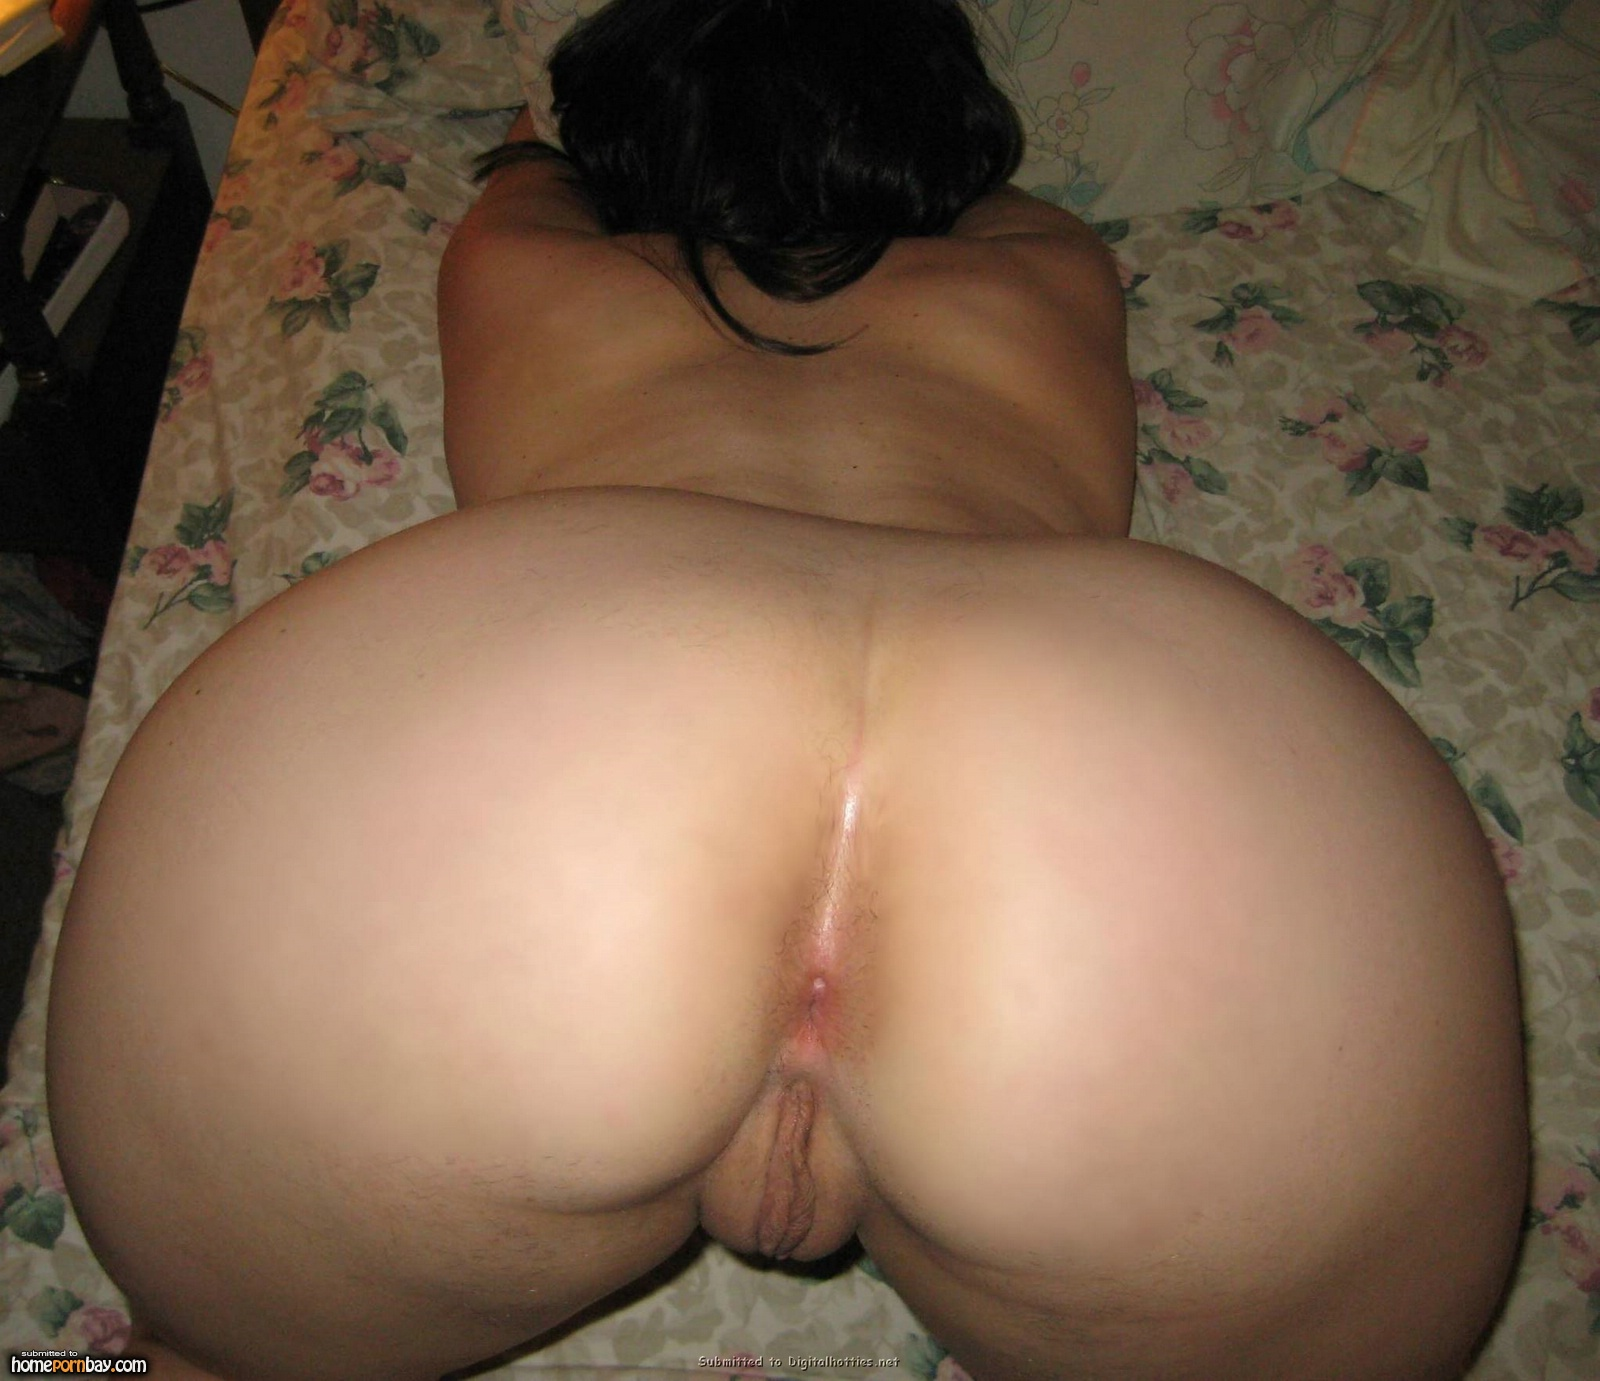 Something is. naked milf pussy sexy huge ass and huge tits confirm